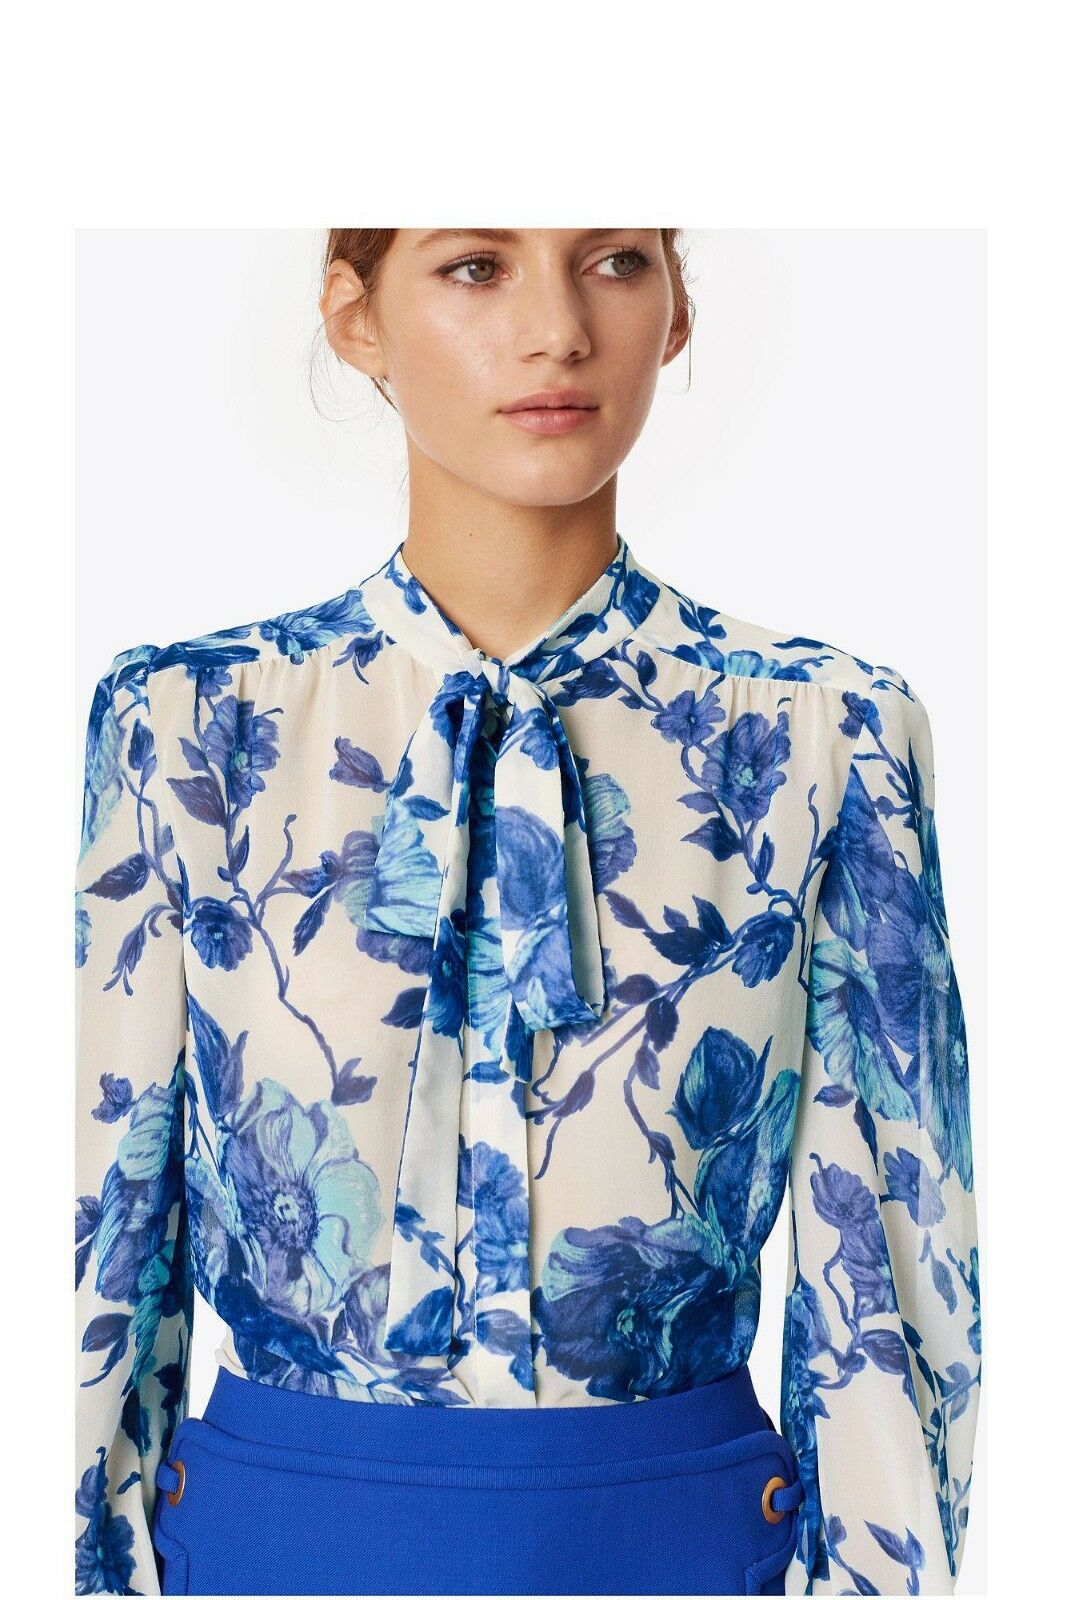 Tory Burch 6 Kia Bow Blouse Shirt S M pinkmont Floral Fall 2017 NWT Garden Party